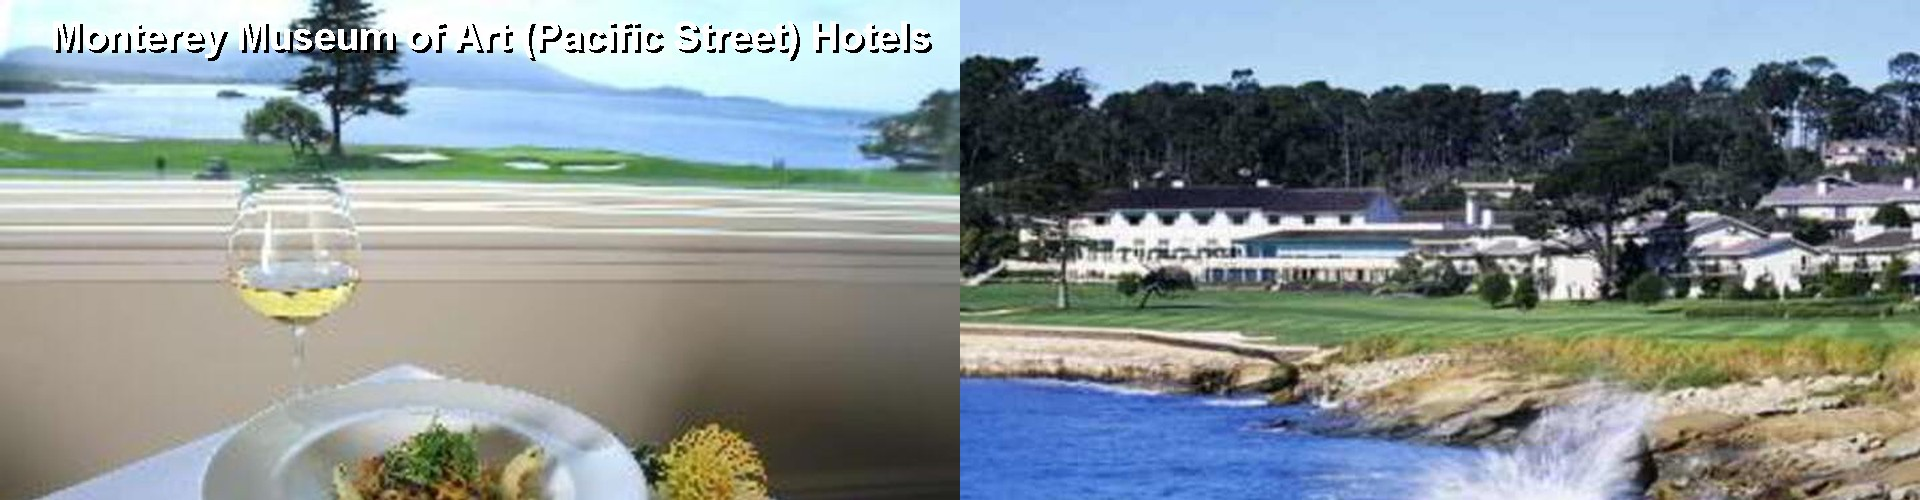 5 Best Hotels near Monterey Museum of Art (Pacific Street)